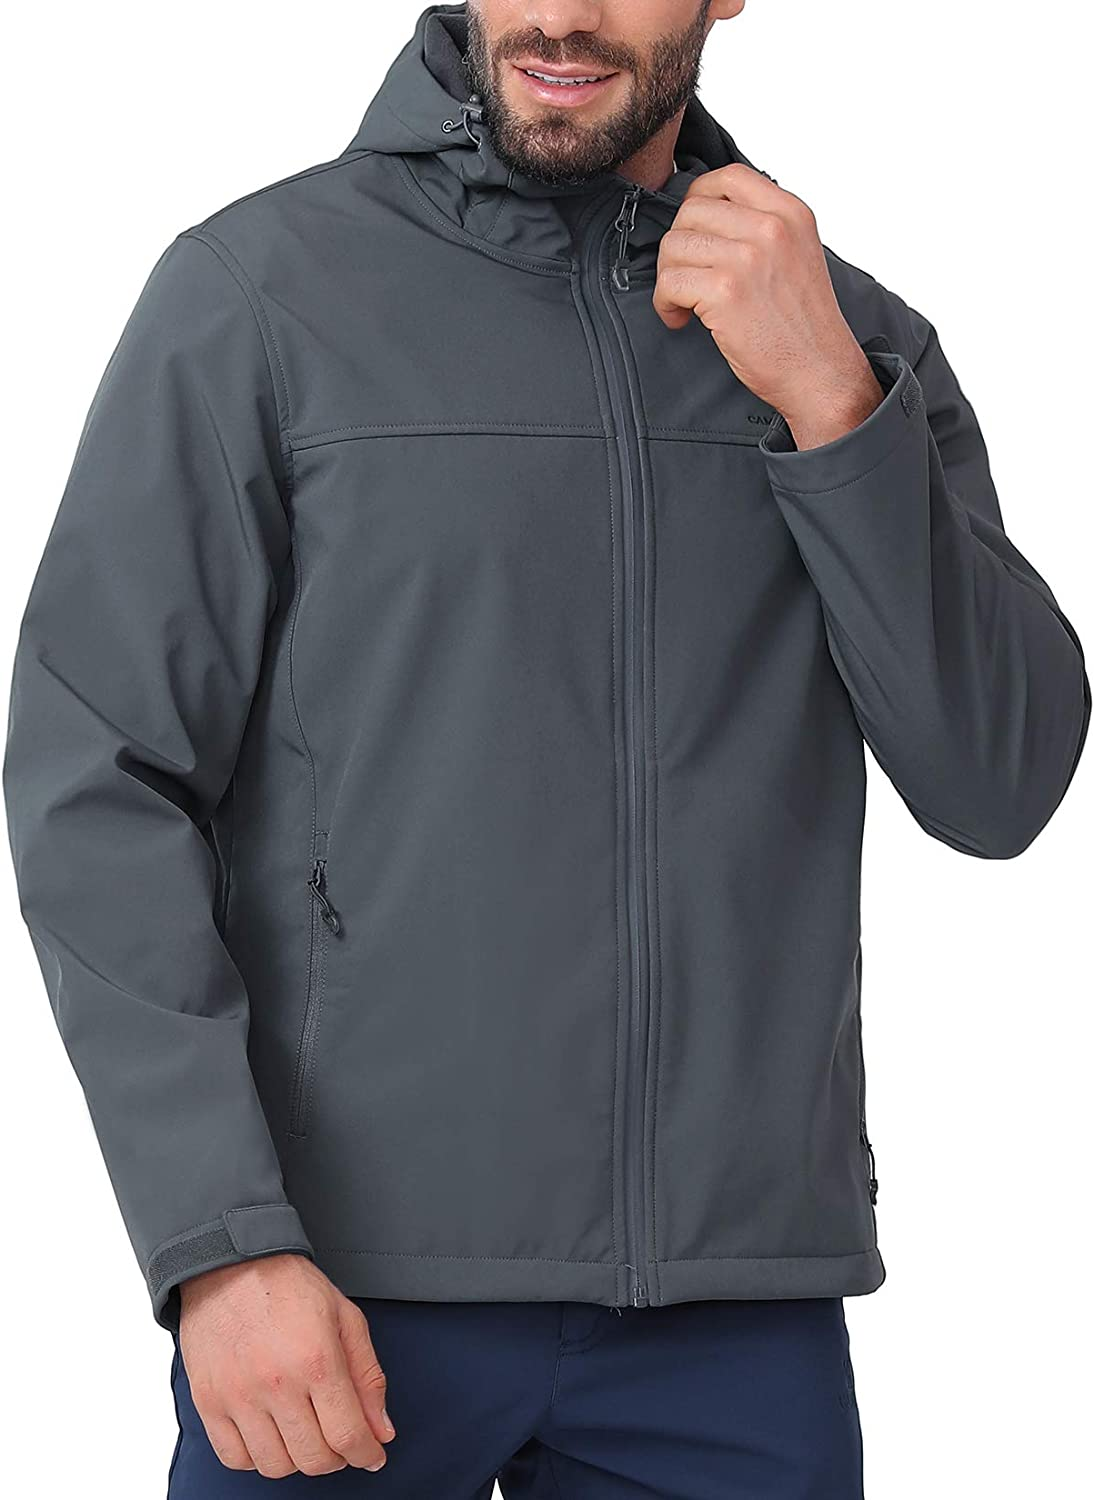 CAMEL CROWN Mens Challenge the lowest price of Japan Softshell Jacket Fleece Lined Bombing free shipping Waterproof Windpr